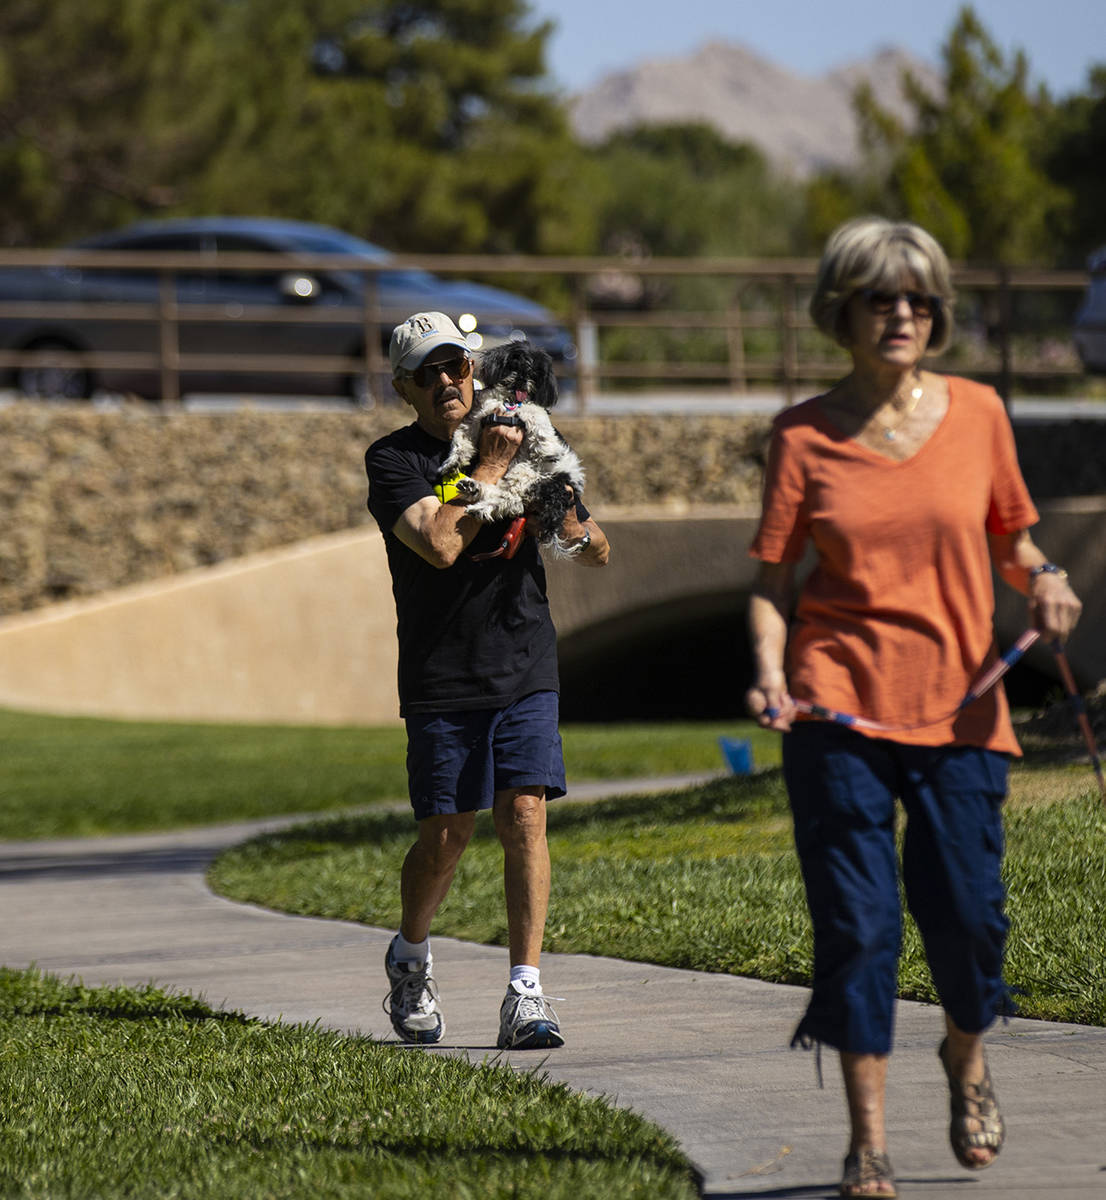 Phil Sardo carries his dog, Mei Mei, in Sun City Summerlin on Friday, May 28, 2021. (Chase Stev ...